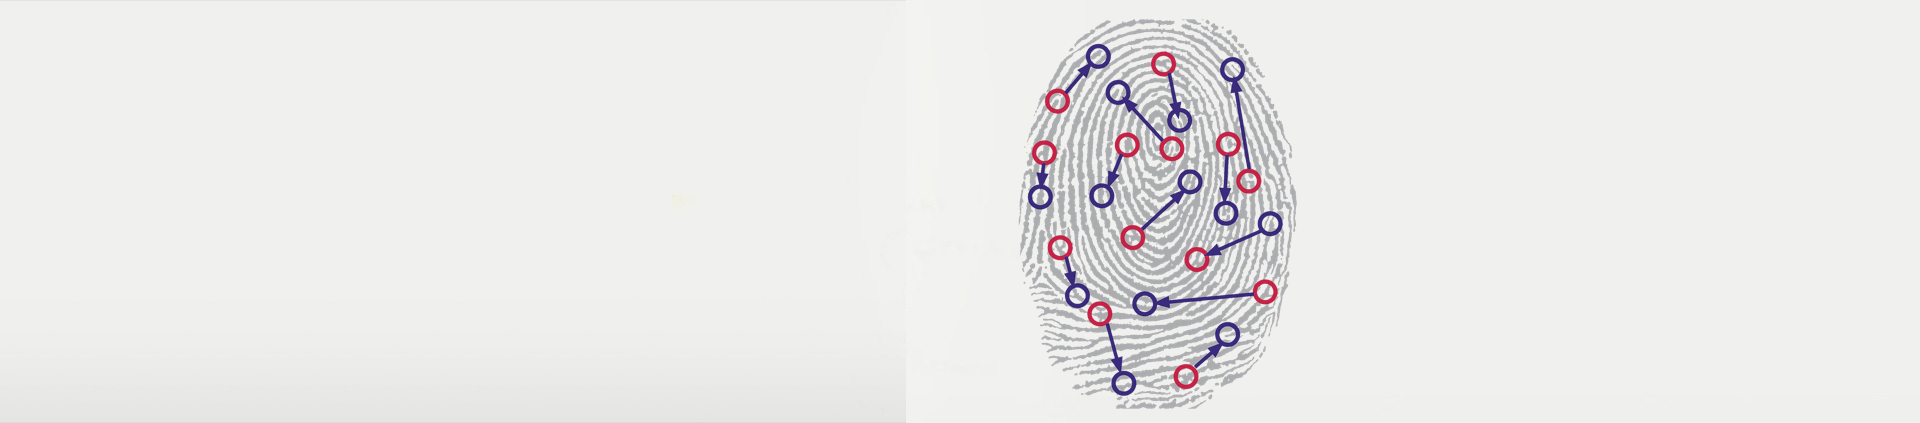 Biometric Fingerprint.png